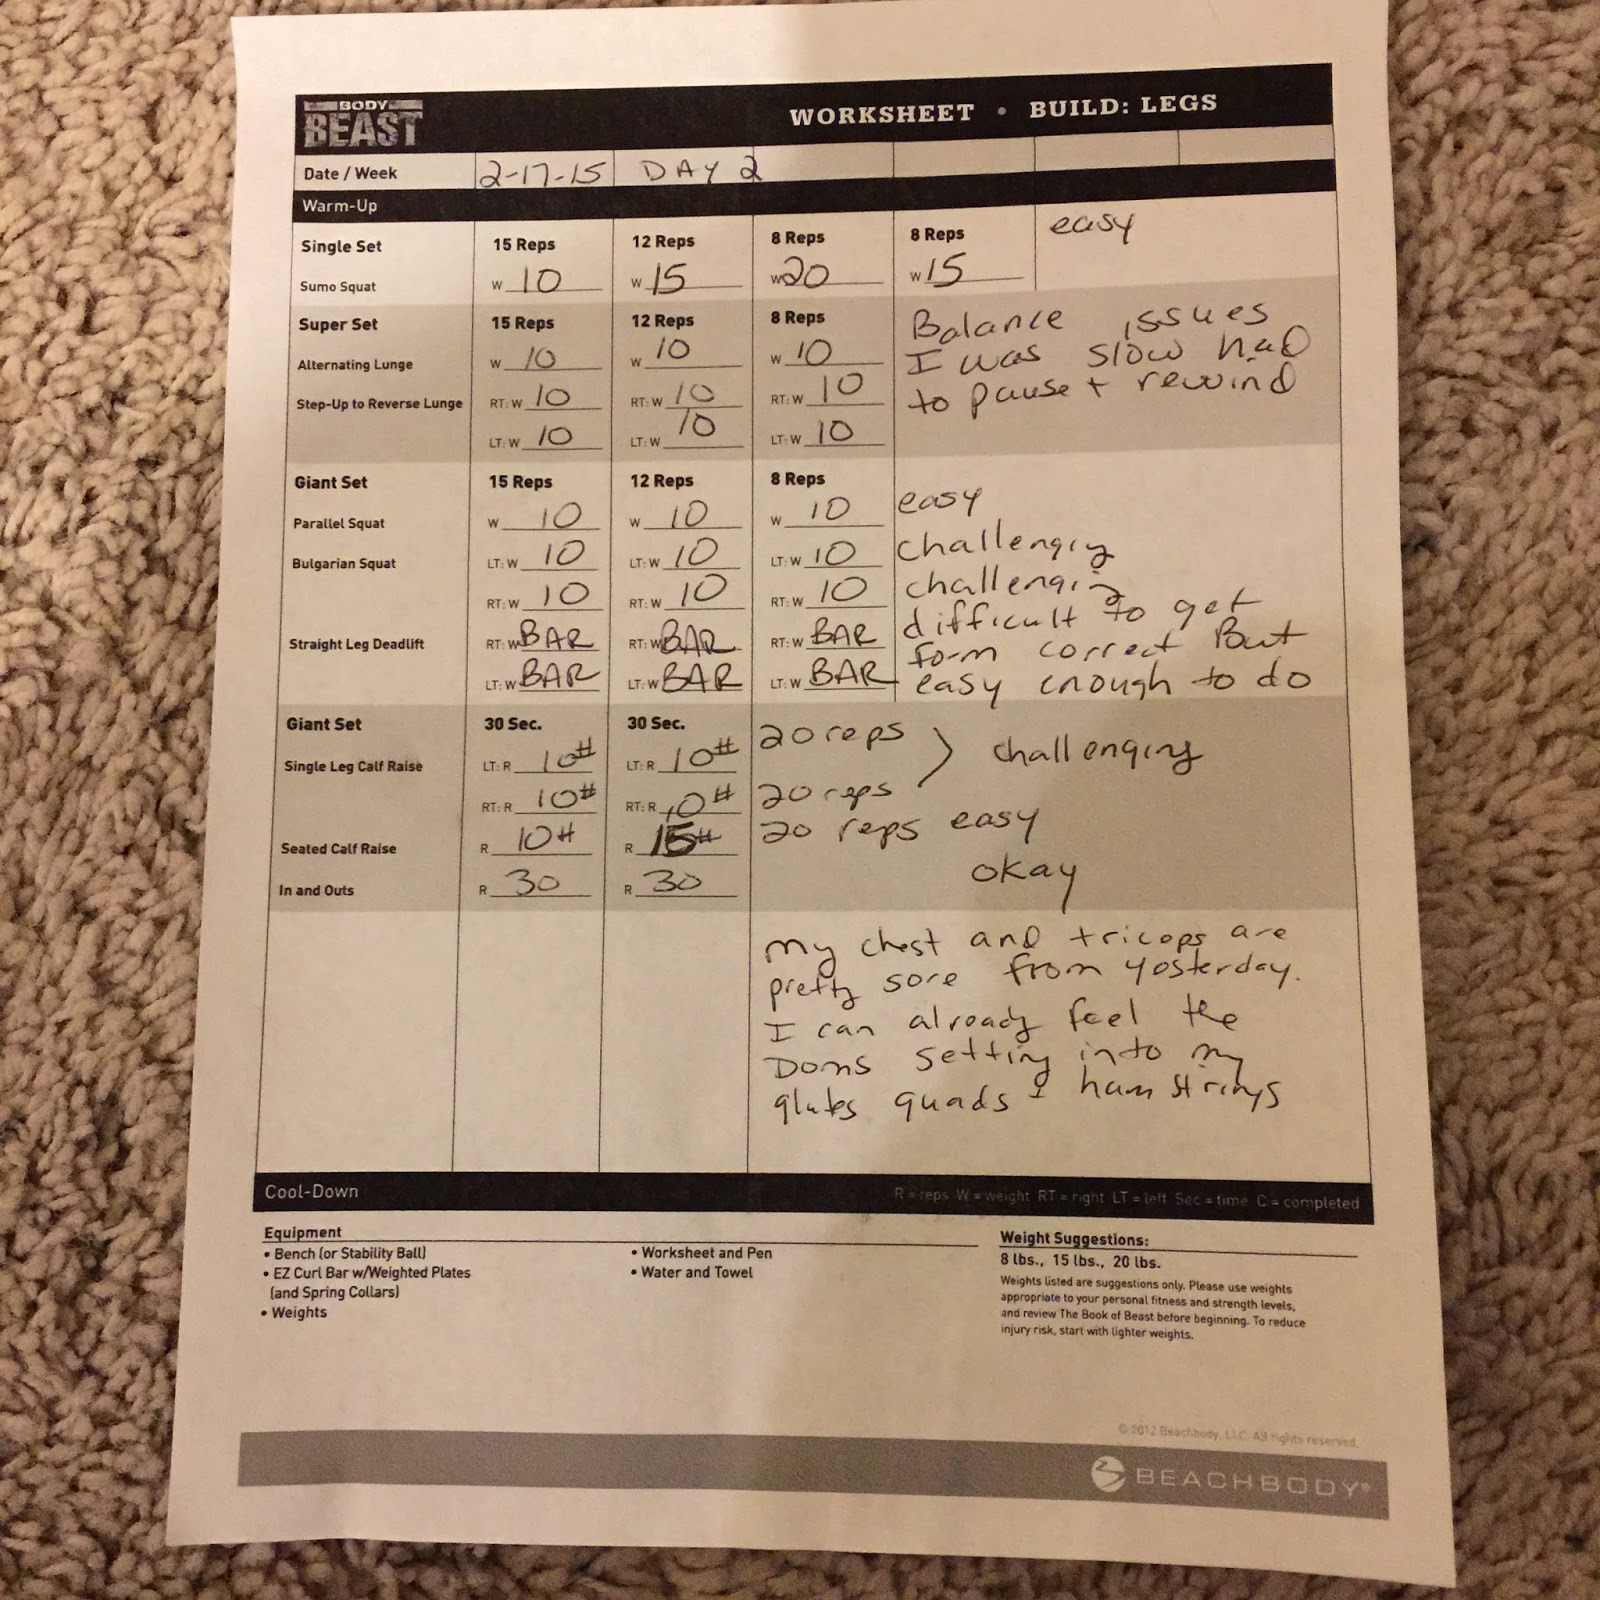 Trapped in a Fat Chick Beachbody Body Beast Day 2 Build Legs – Beast Workout Sheet